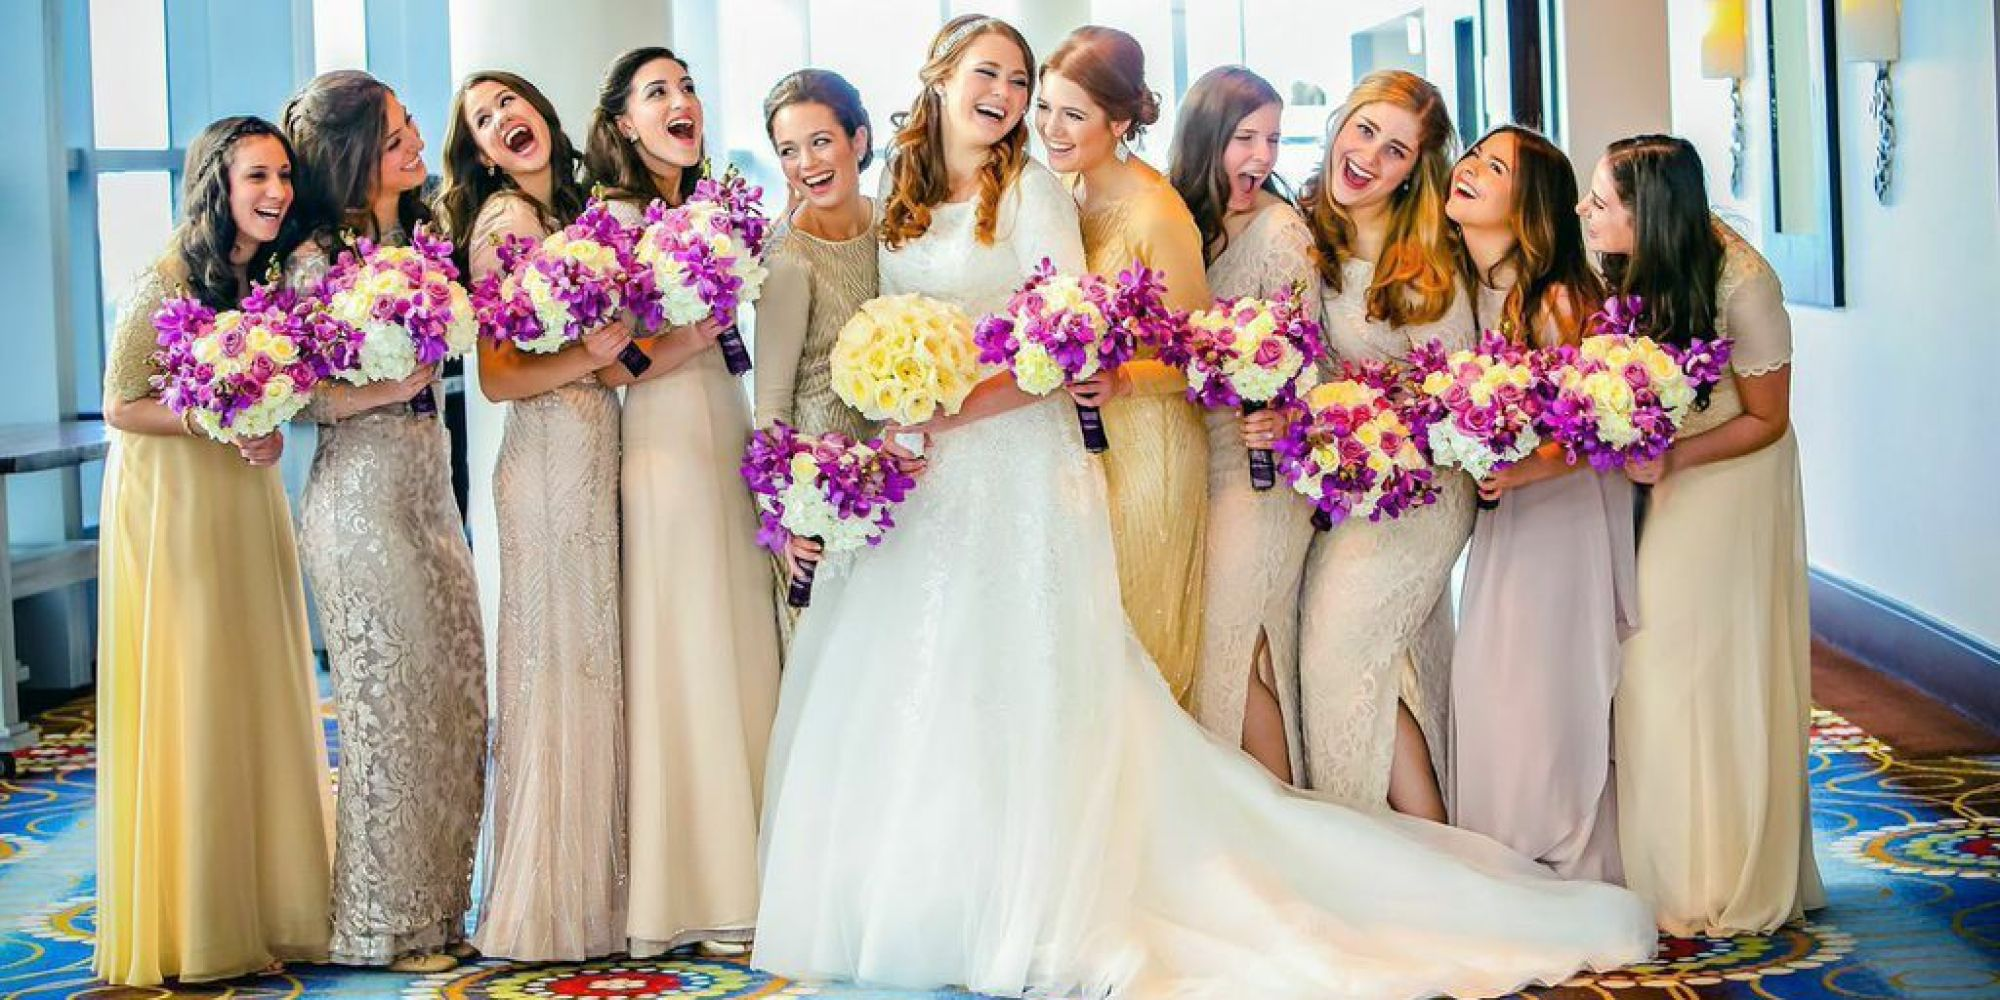 7 bridal parties who totally nailed the mismatched dresses trend 7 bridal parties who totally nailed the mismatched dresses trend huffpost ombrellifo Choice Image